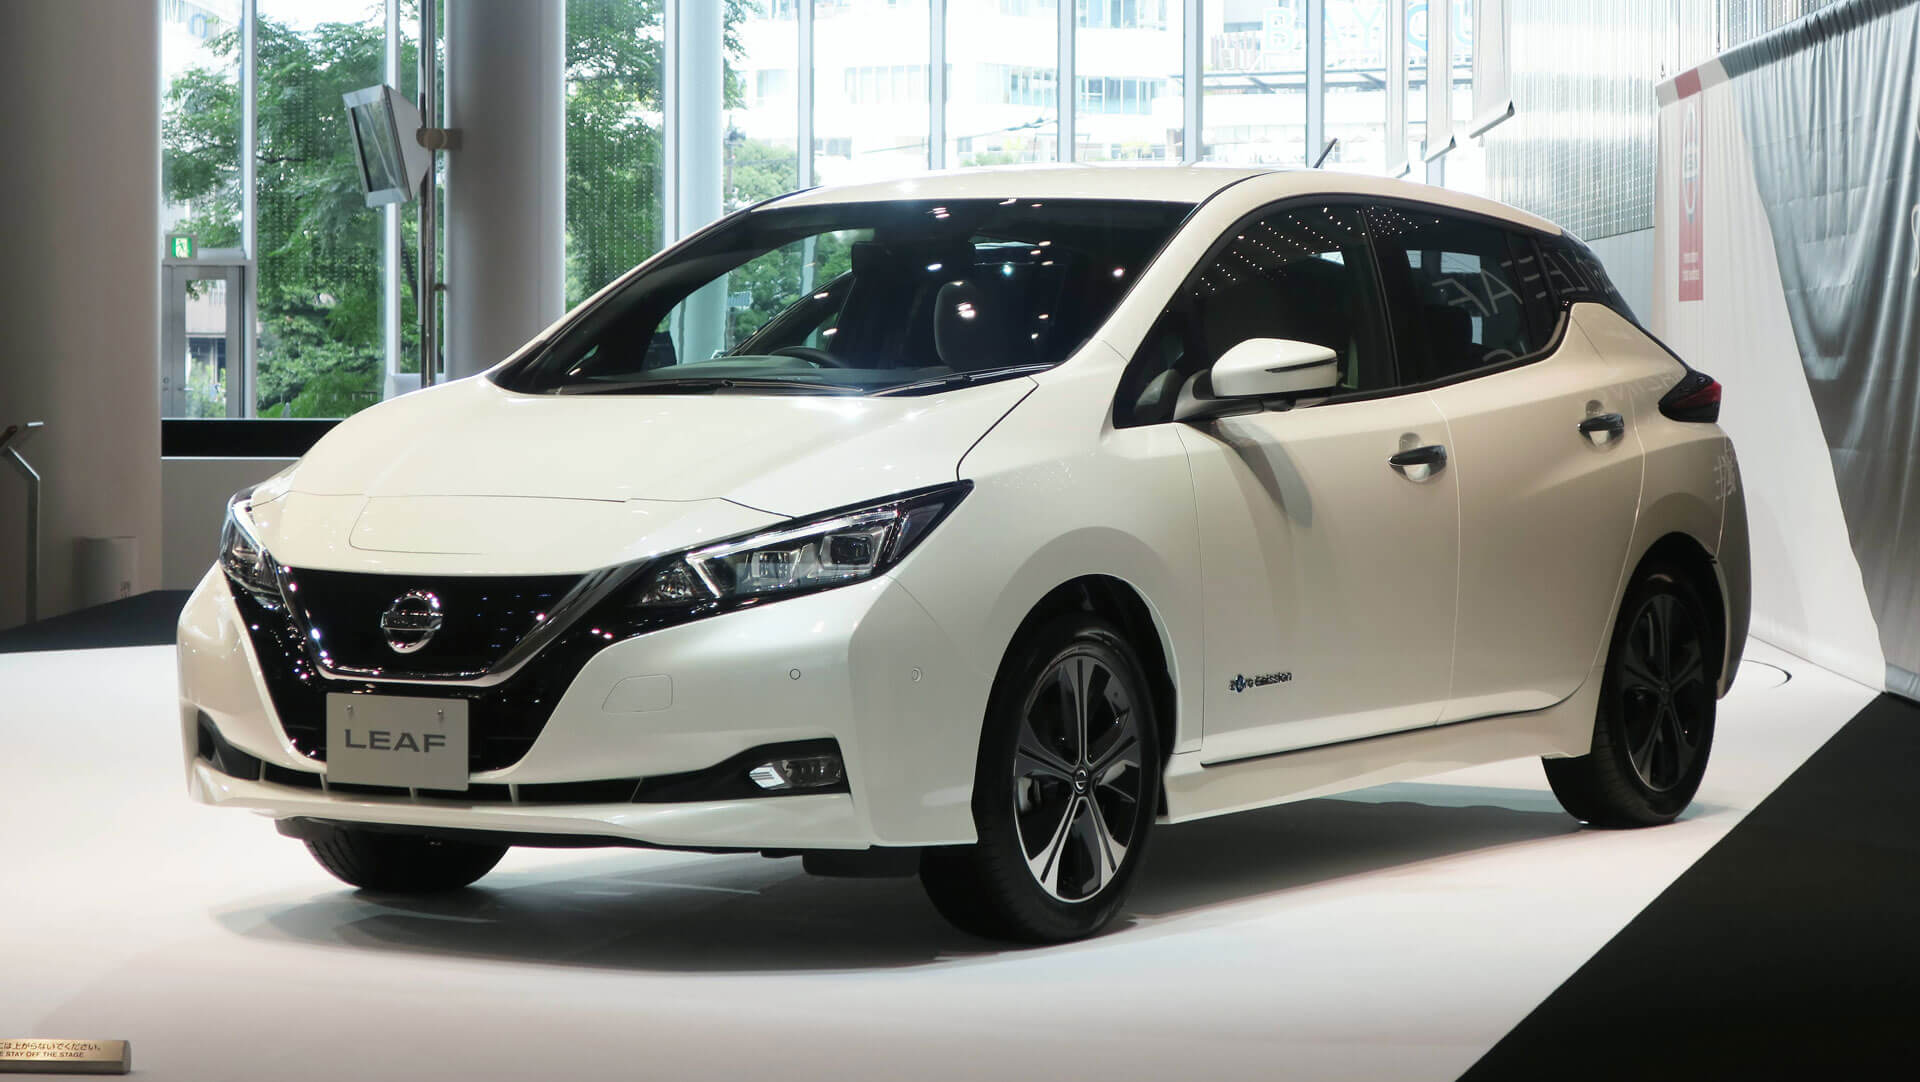 https://epunjaci.hr/wp-content/uploads/2018/10/Nissan_Leaf1.jpg